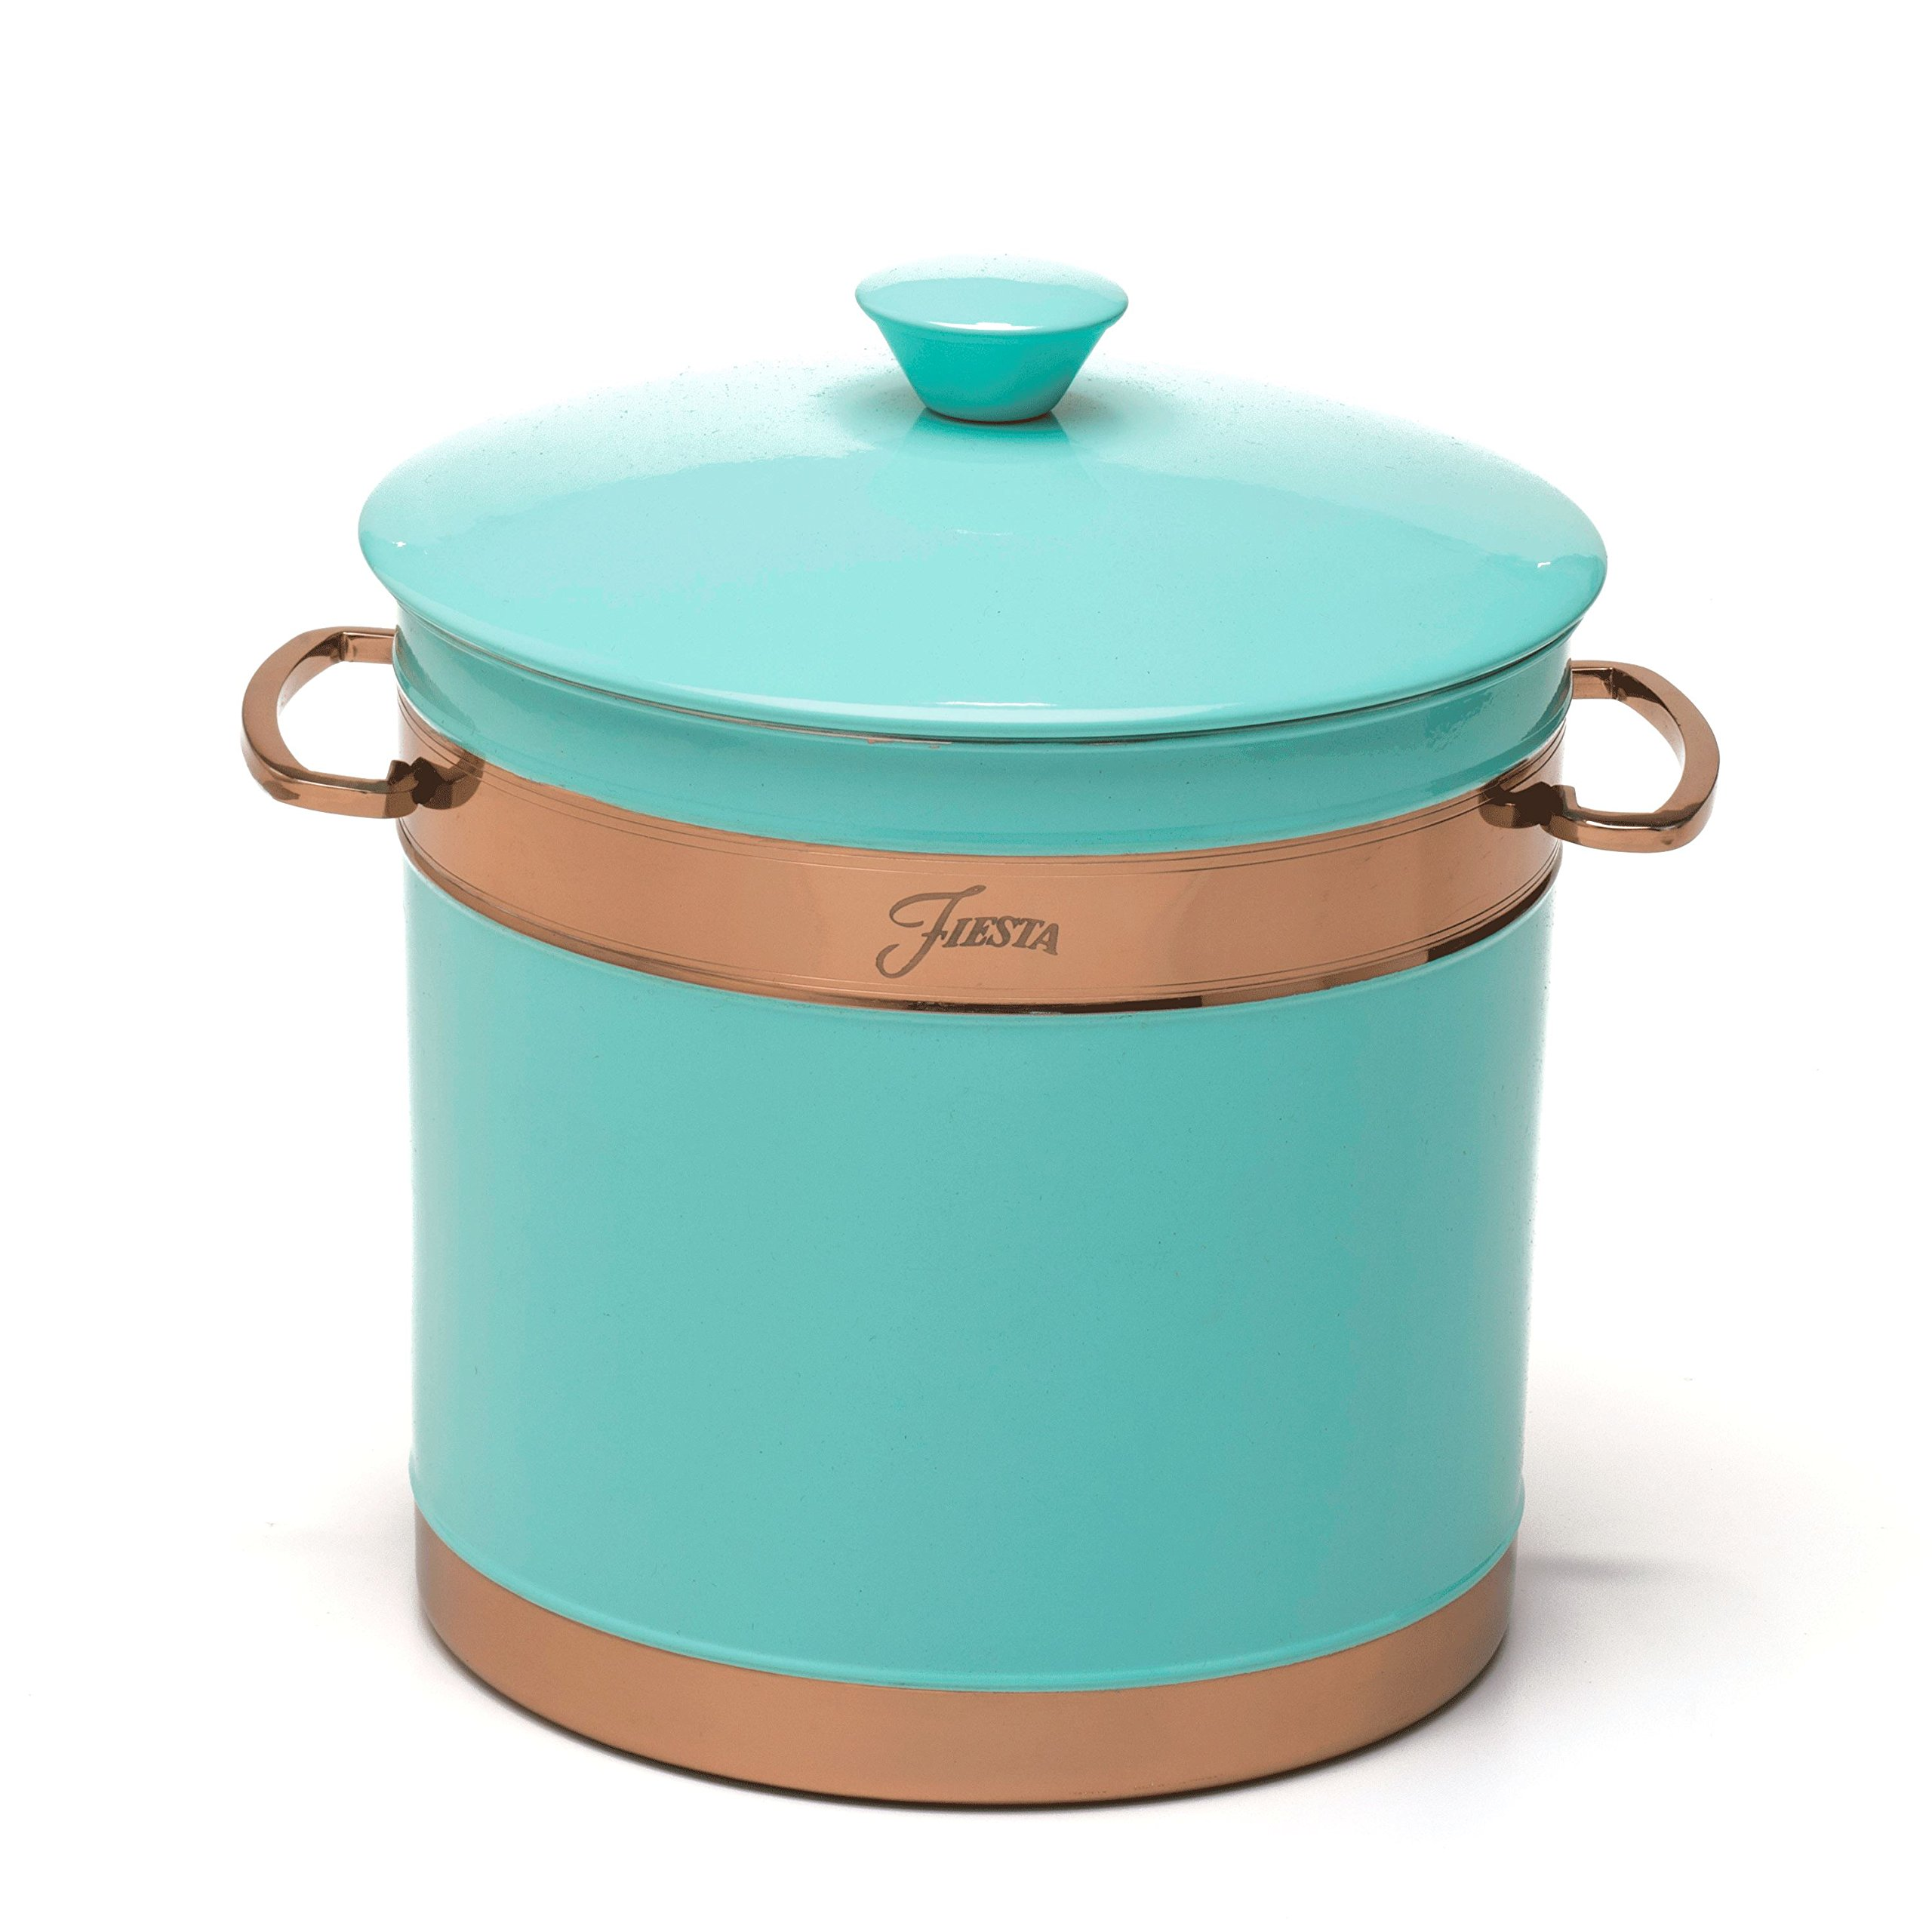 Fiesta 3 quart Double-Walled Ice Bucket with Copper Accents, Turquoise by Fiesta (Image #1)